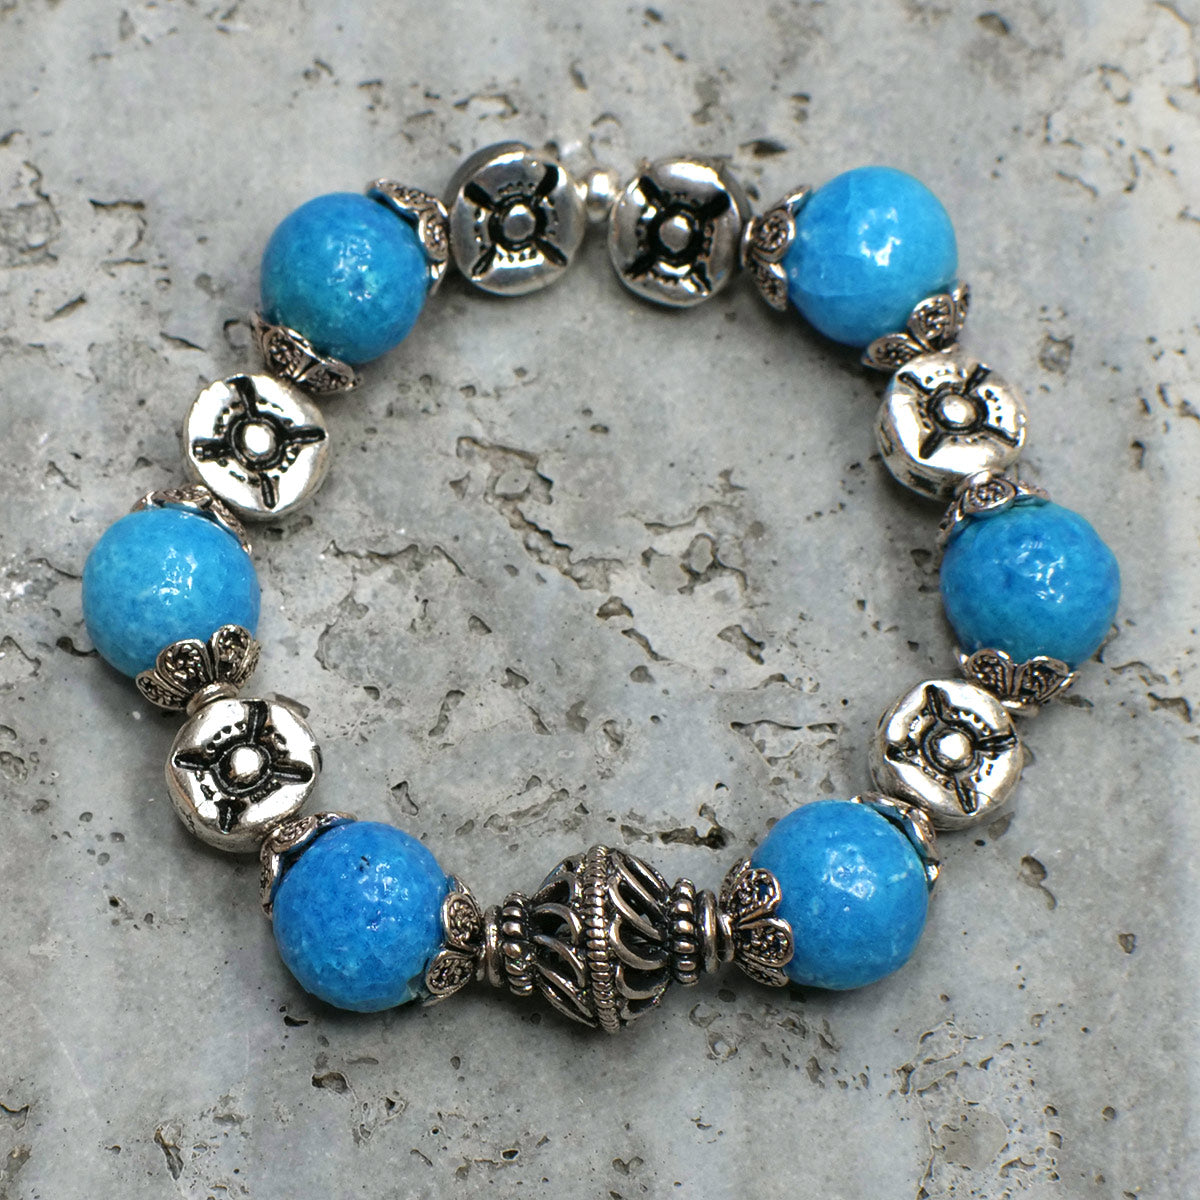 Women's Bracelet in Sky Blue Faience - Em Hotep Collection